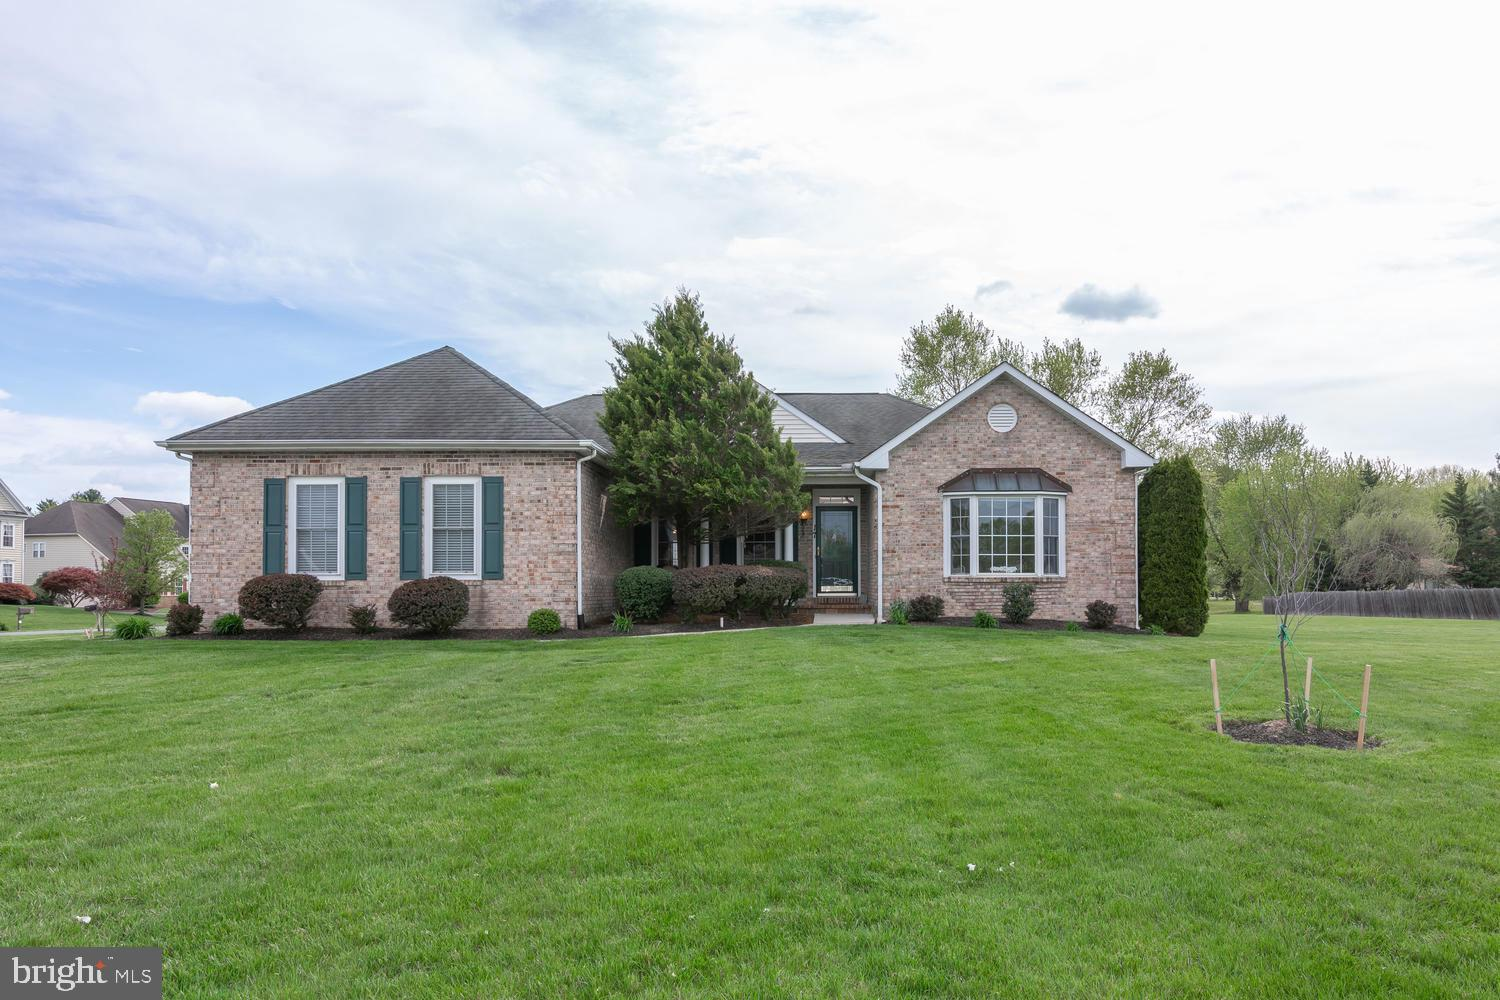 "Welcome home to the Estates at Farmington!  Located in the sought after Appoquinimink School District, this charming brick property sits on a half acre corner lot and has a first floor master suite! Enter through the front door to a formal dining room with custom mill work on your left and a living room with crown molding and expansive bay window on your right.  The family room has an open floor plan, gleaming hardwood floors and cozy fireplace.  Enjoy the clean as a whistle eat-in kitchen with crisp white 42"" cabinets and stainless steel appliances.   Lots of cabinetry and counter space!  Two spacious bedrooms with full bath are situated on one side of the home while the master suite is on the opposite side.   The expansive master suite has a tray ceiling, sitting area, private master bath with dual sinks, shower and whirlpool tub, a great place for a retreat after a long day!  A large laundry room sits just off the hallway from the master bedroom.   Deck with Sunsetter awning awaits for weekend barbecues!  There is an in-law suite that has its own private entrance from the outside!  If you have a family member that wants independence but still desires to be close, this additional living area is ideal!  Sitting and eating area plus a FULL kitchen are in the main room.   HUGE bedroom with a walk-in closet and full bath complete this area.   There is a large storage space for possibly a exercise area as well in the basement.   Lots of possibilities!  You will not find another home like this in the area!"